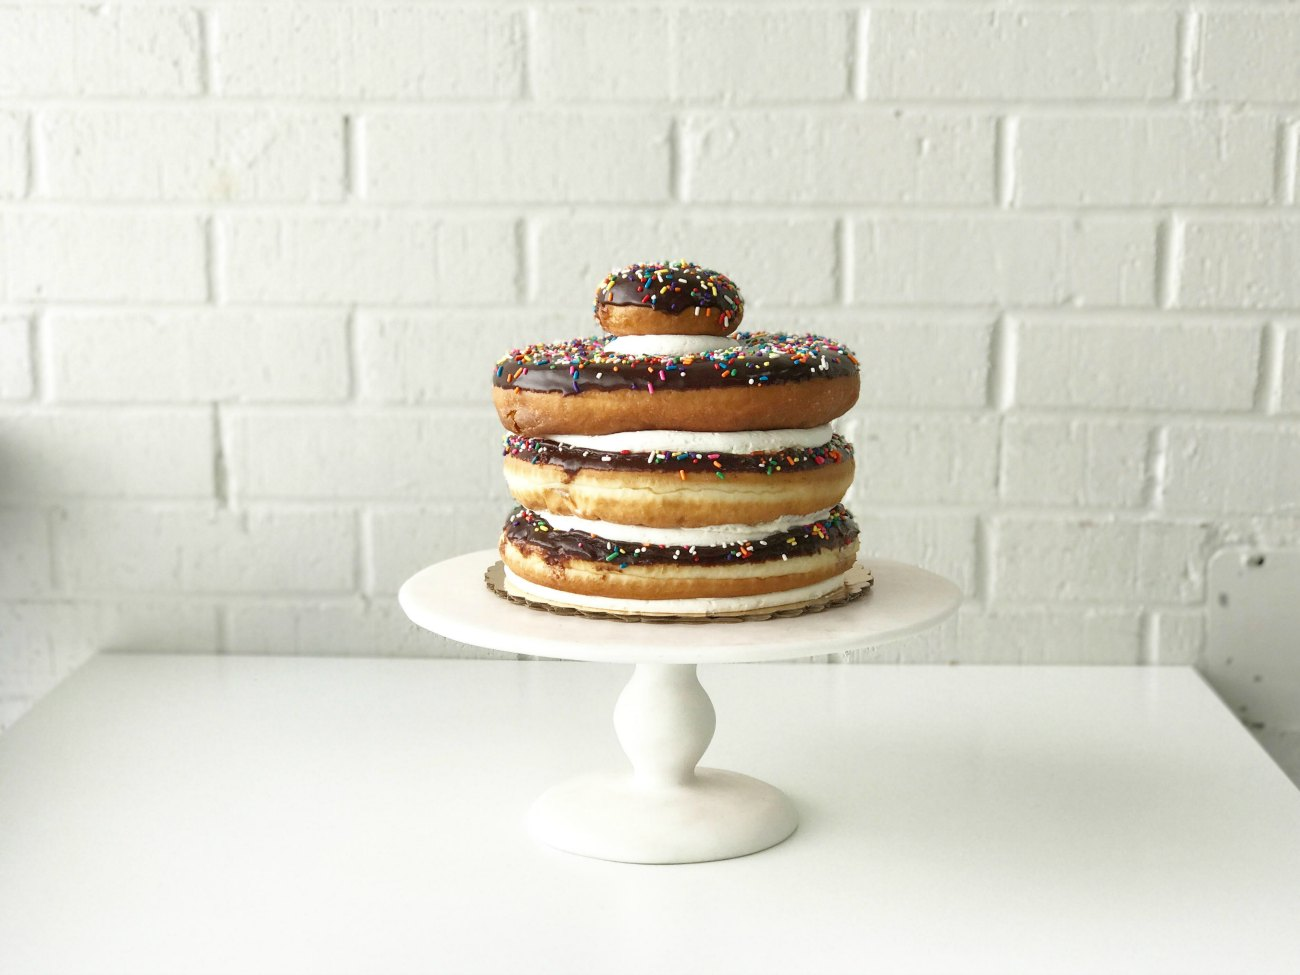 Here's the ultimate cake for doughnut lovers